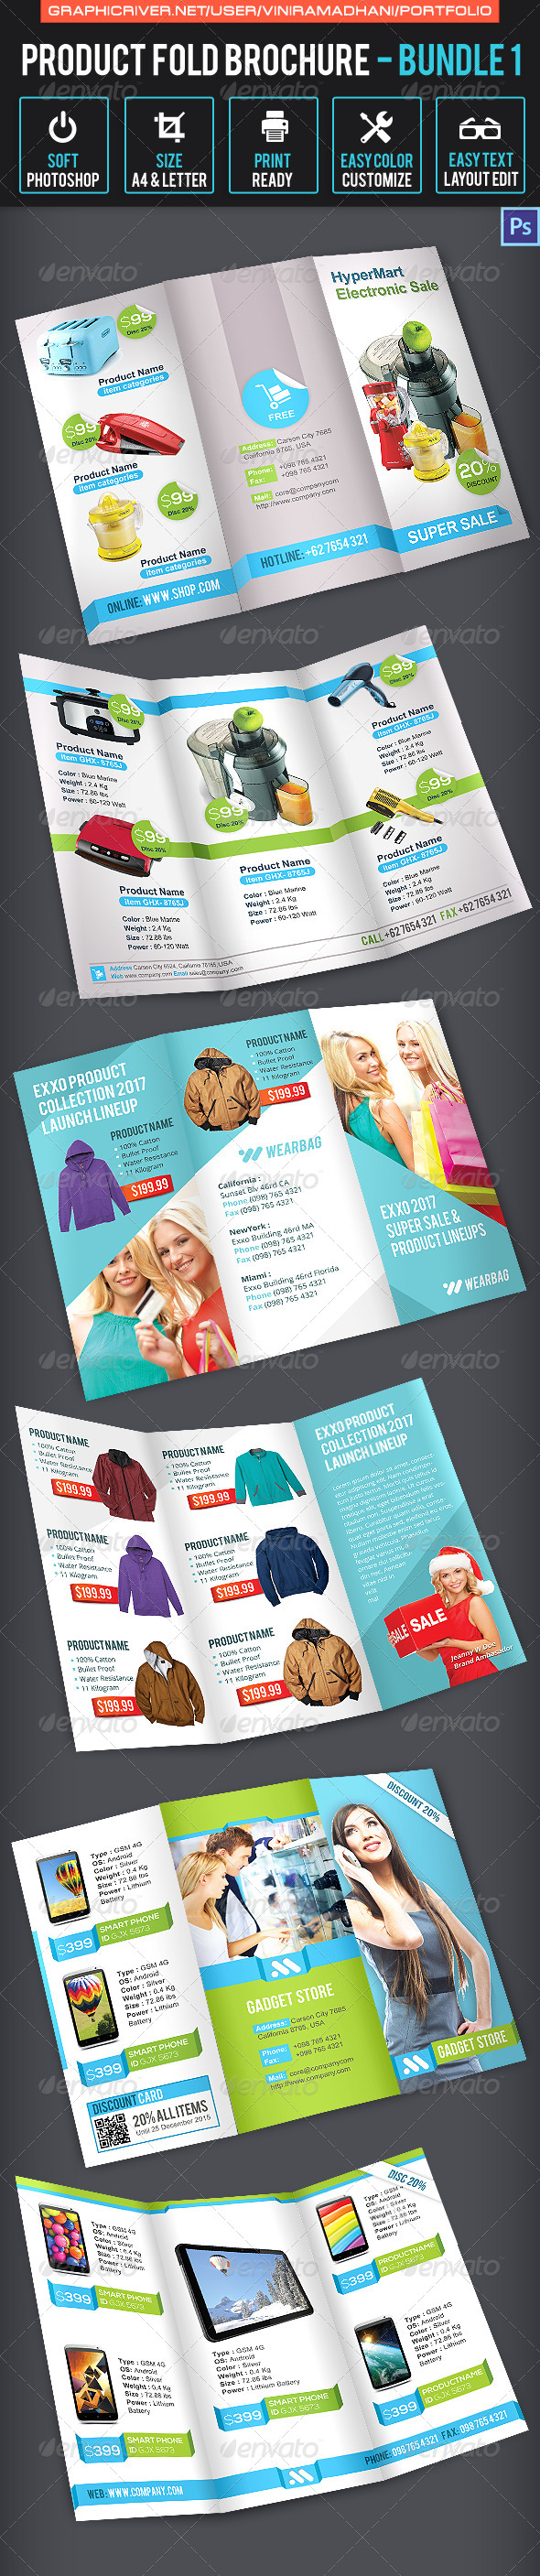 Product Promotion Trifold Bundle 1